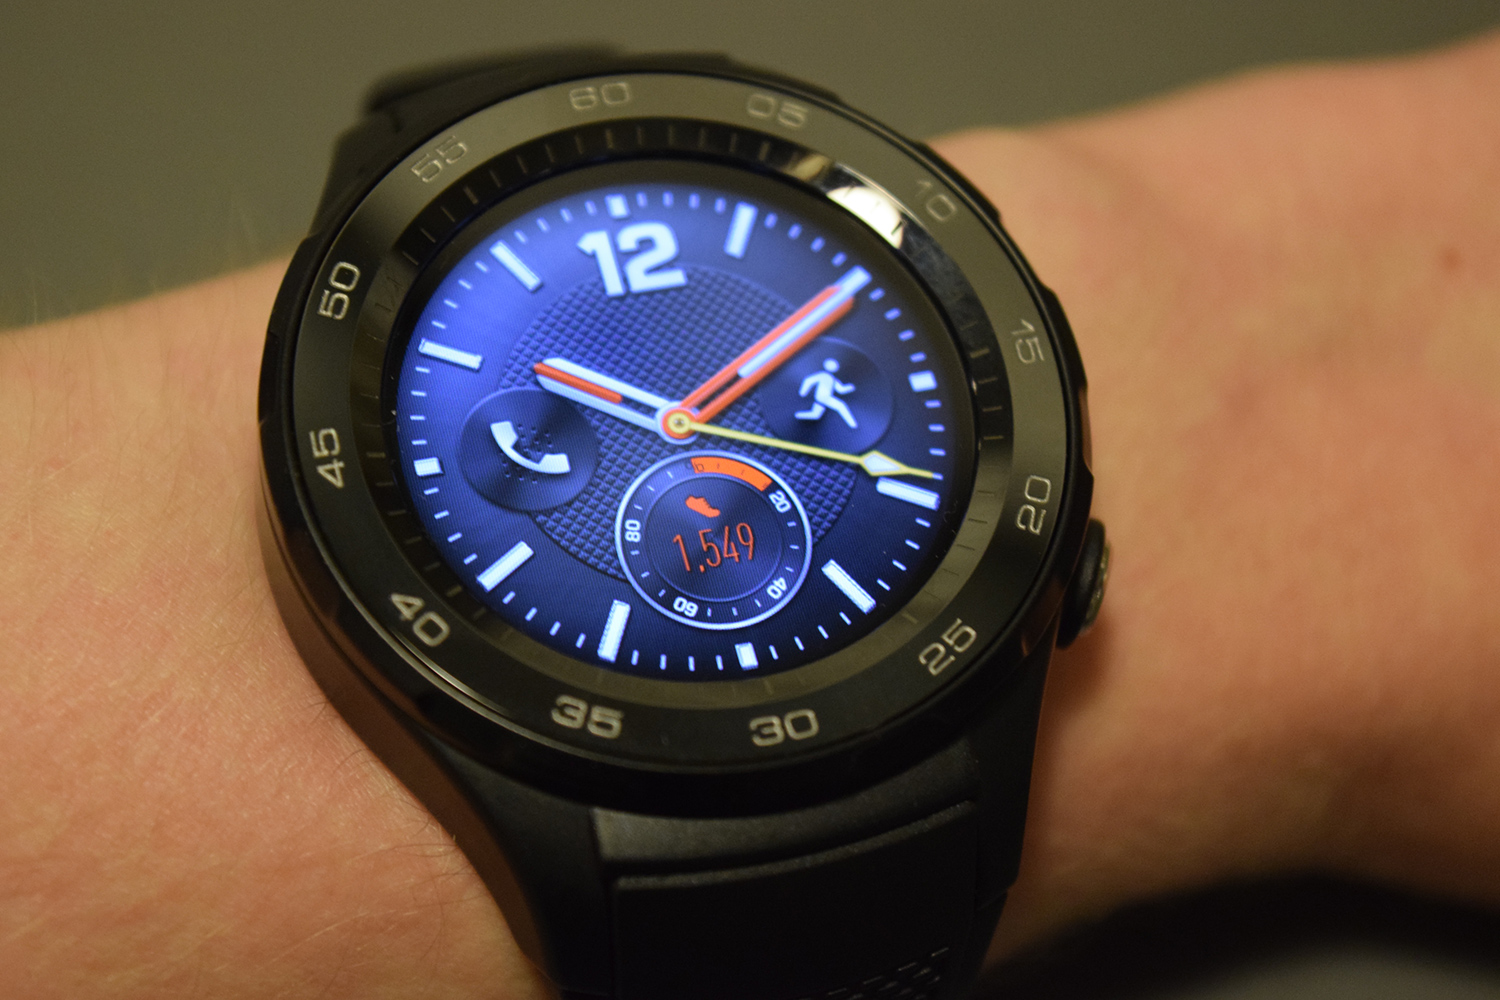 Huawei Watch 2: Our first take